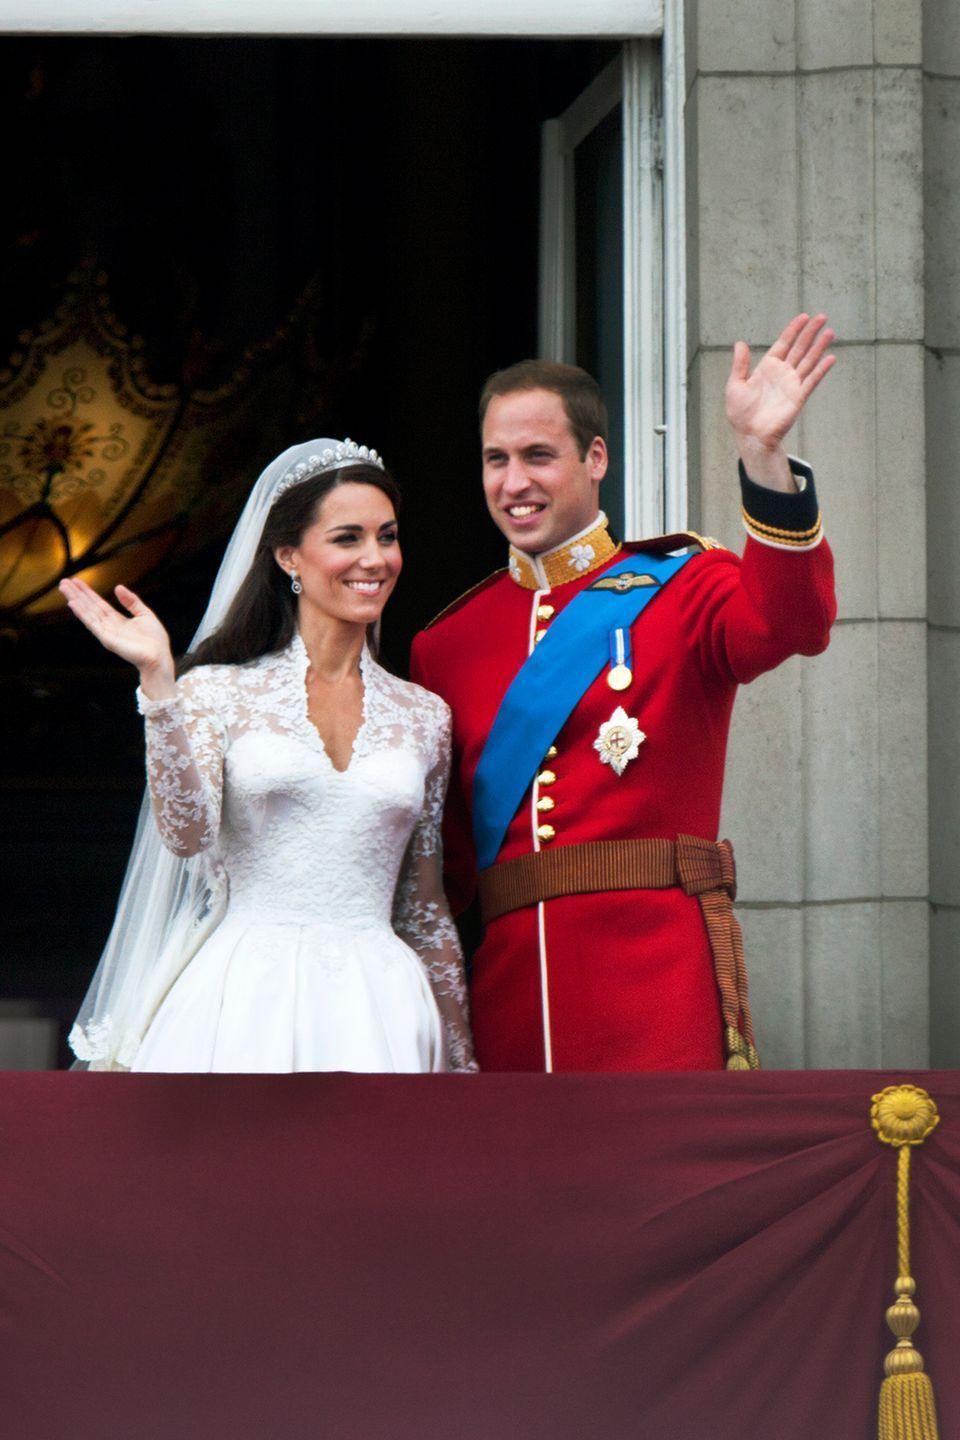 """<p>After a very public royal wedding, Kate and William held a more intimate, 300-person reception. The details of the party remain somewhat secretive, but one of the dinner menus was leaked, revealing that the newlyweds served lamb as the main course. </p><p><em><a href=""""https://www.express.co.uk/life-style/life/874288/kate-middleton-wedding-duchess-of-cambridge-prince-william-menu-food"""" rel=""""nofollow noopener"""" target=""""_blank"""" data-ylk=""""slk:Express"""" class=""""link rapid-noclick-resp"""">Express</a></em> pointed out that lamb is a rather controversial meat because it's either a hit or miss with people—s0, if their guests didn't like it, that would be a lot of wasted food. </p>"""